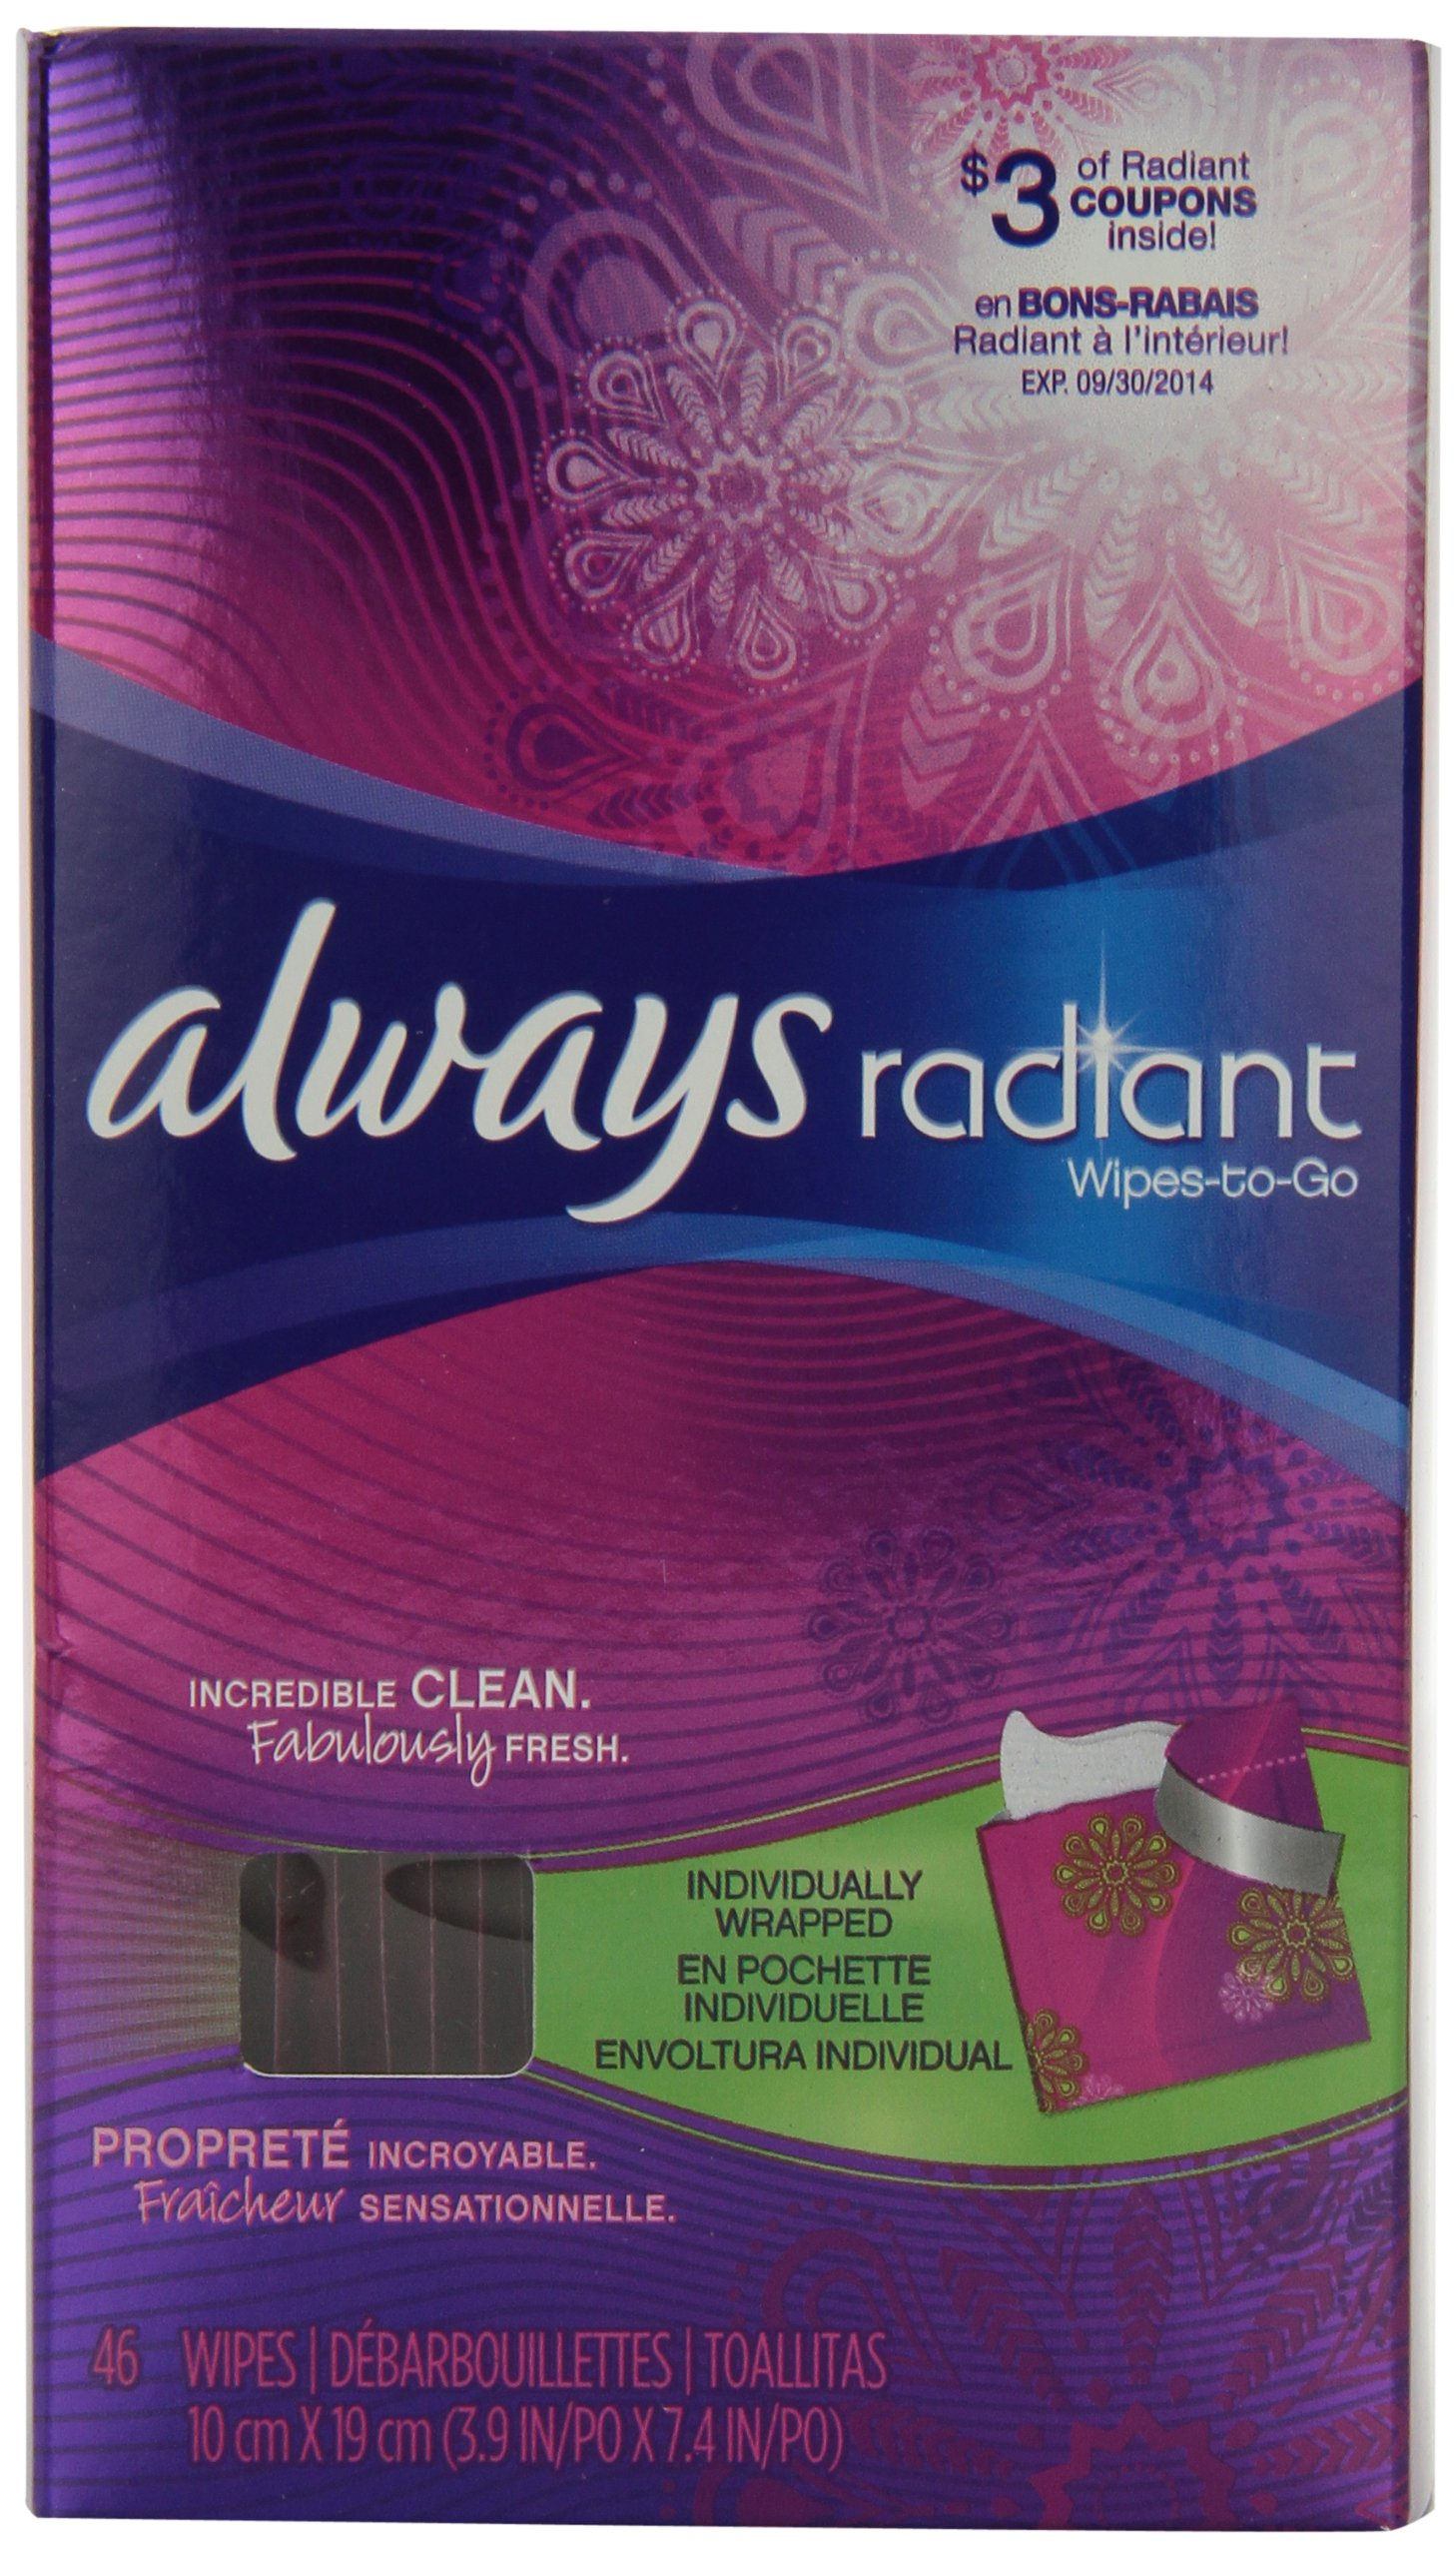 Always Radiant Feminine Wipes-To-Go, 46 Count product image